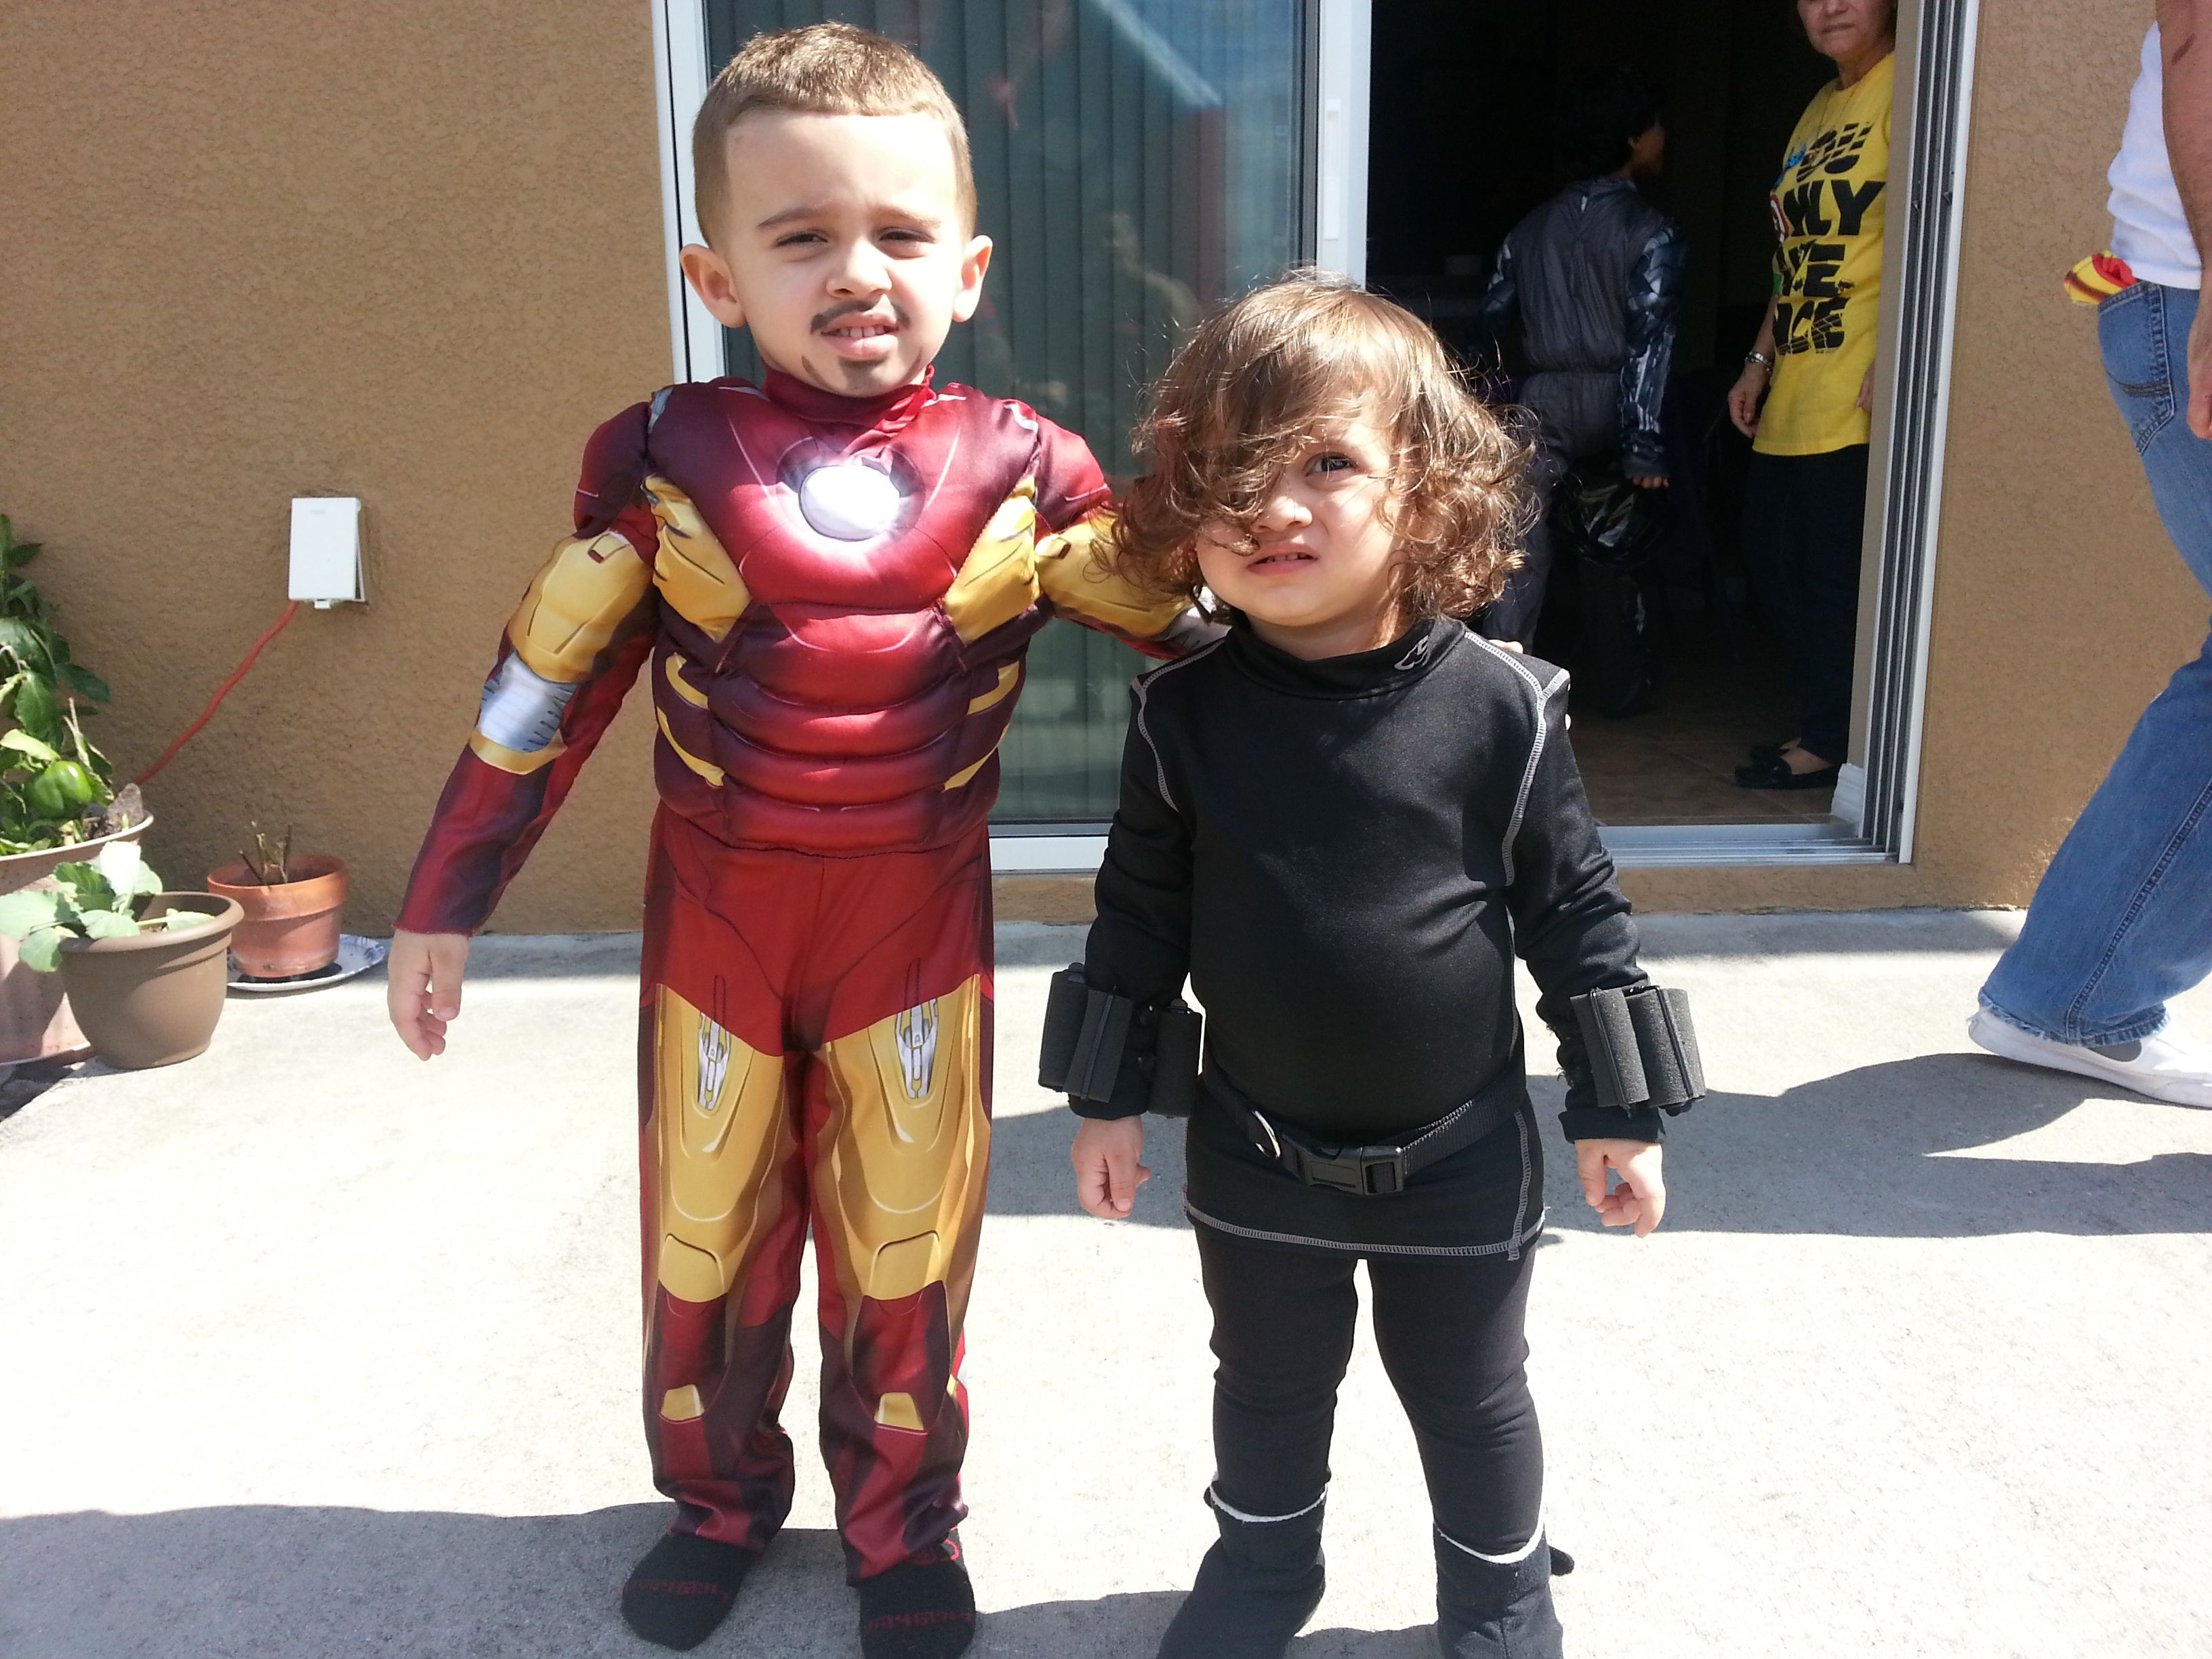 Ironman and Black Widow costume idea for toddlers | Fiesta ideas ...